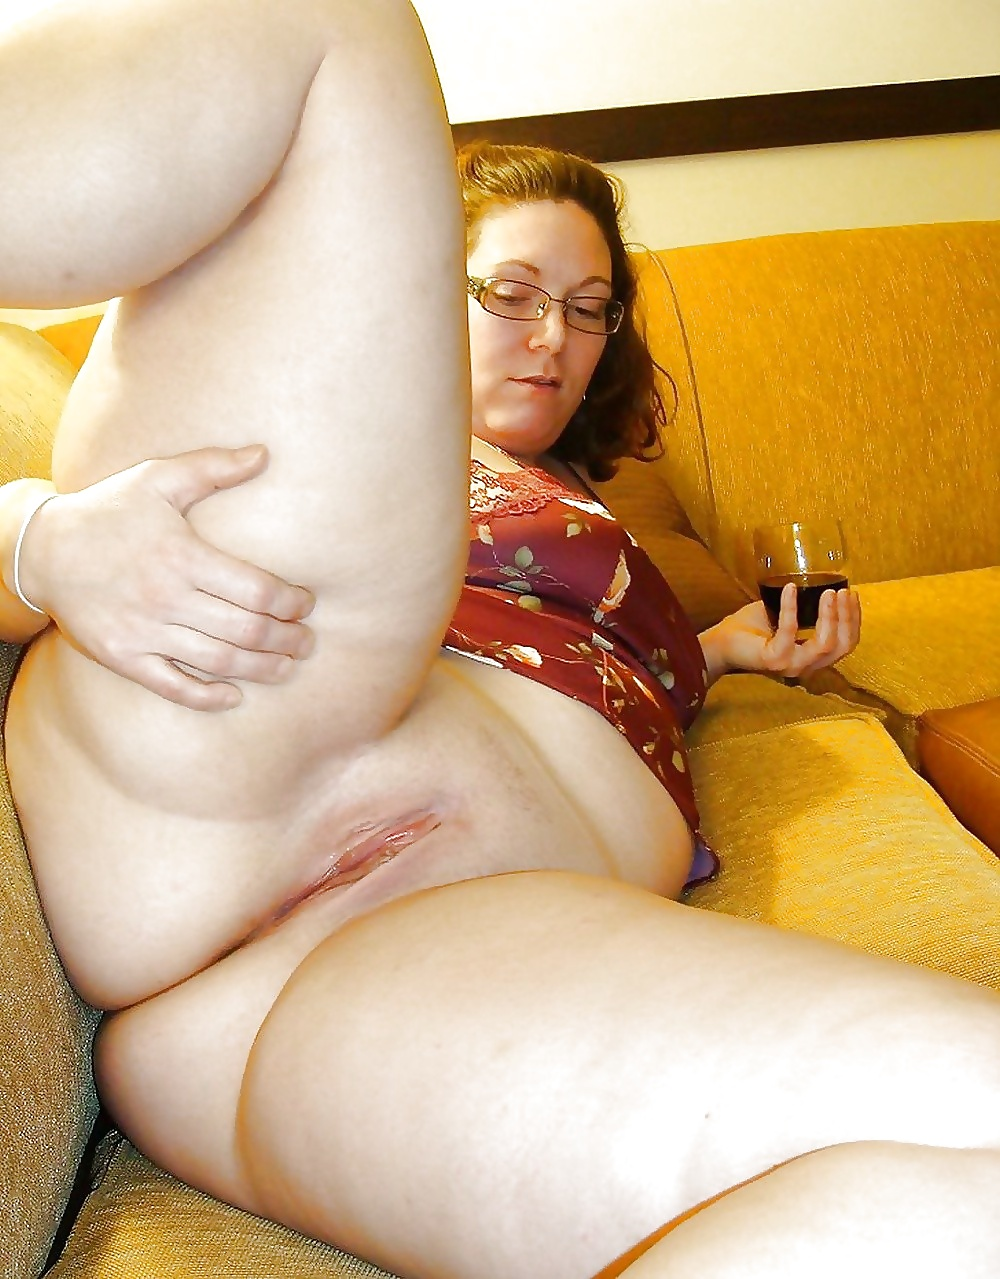 Fat Teen Masturbating Archives